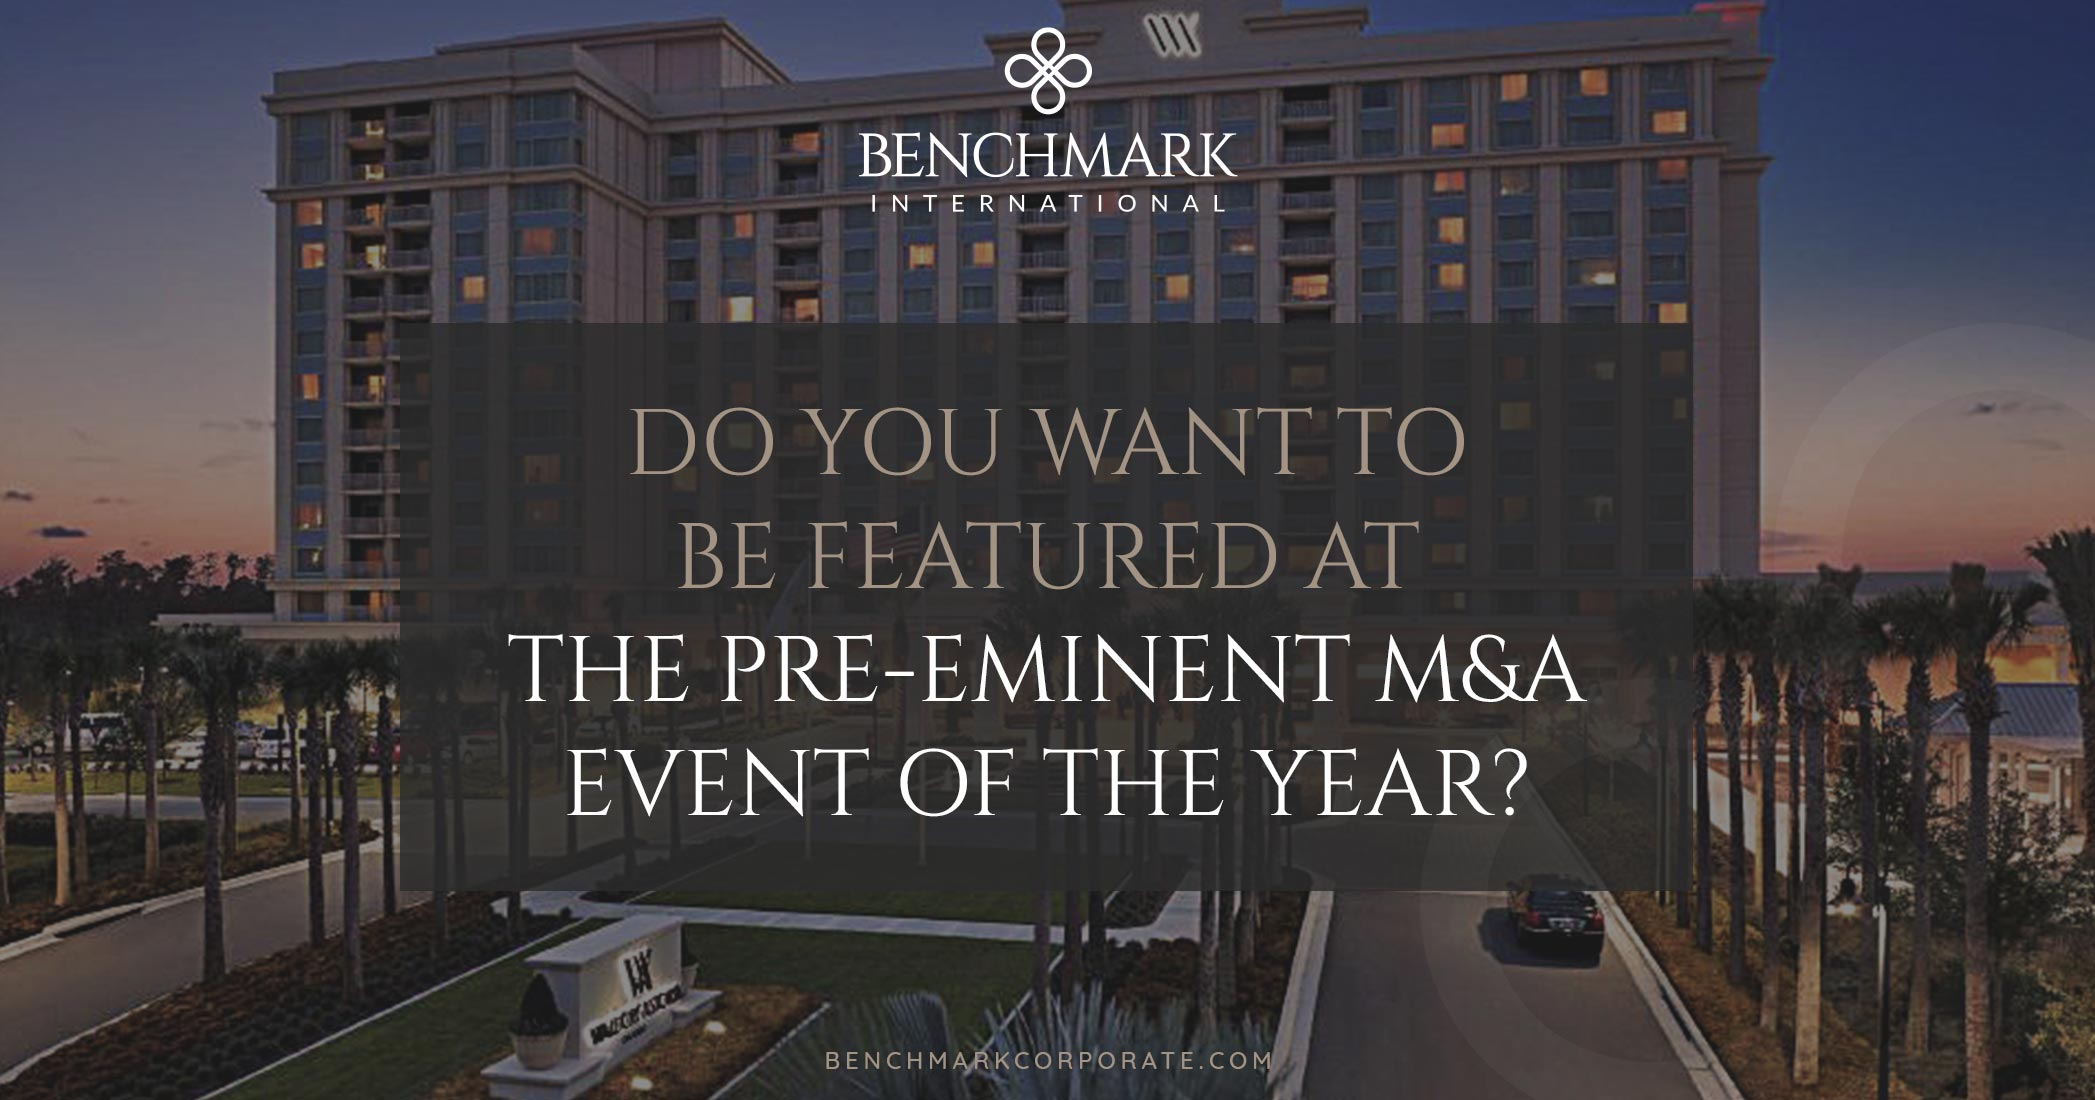 Do You Want to be Featured at the Pre-eminent M&A Event of the Year?